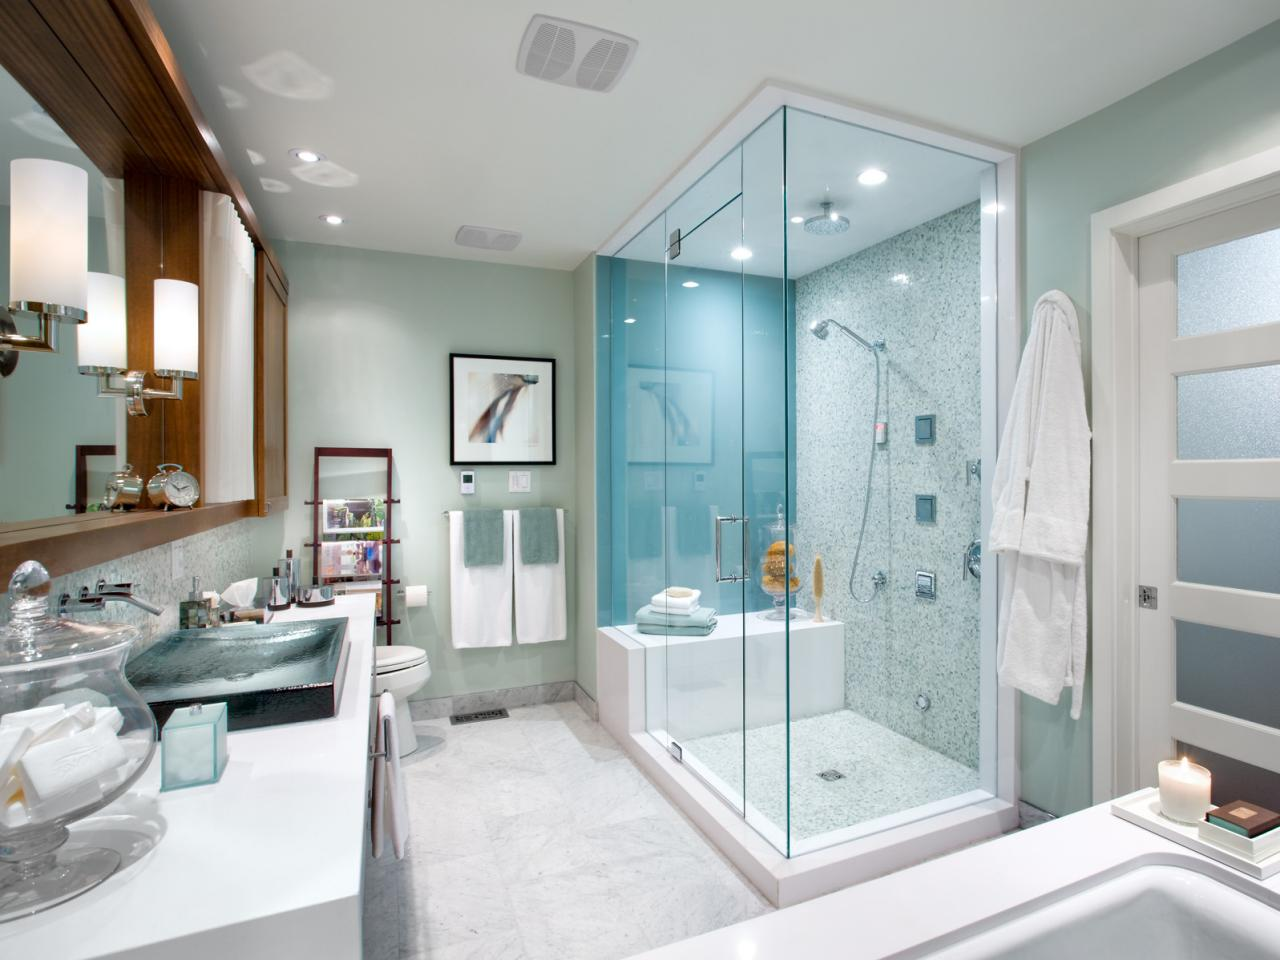 Bathroom remodeling ideas on a budget that are budget for Remodeling your bathroom on a budget